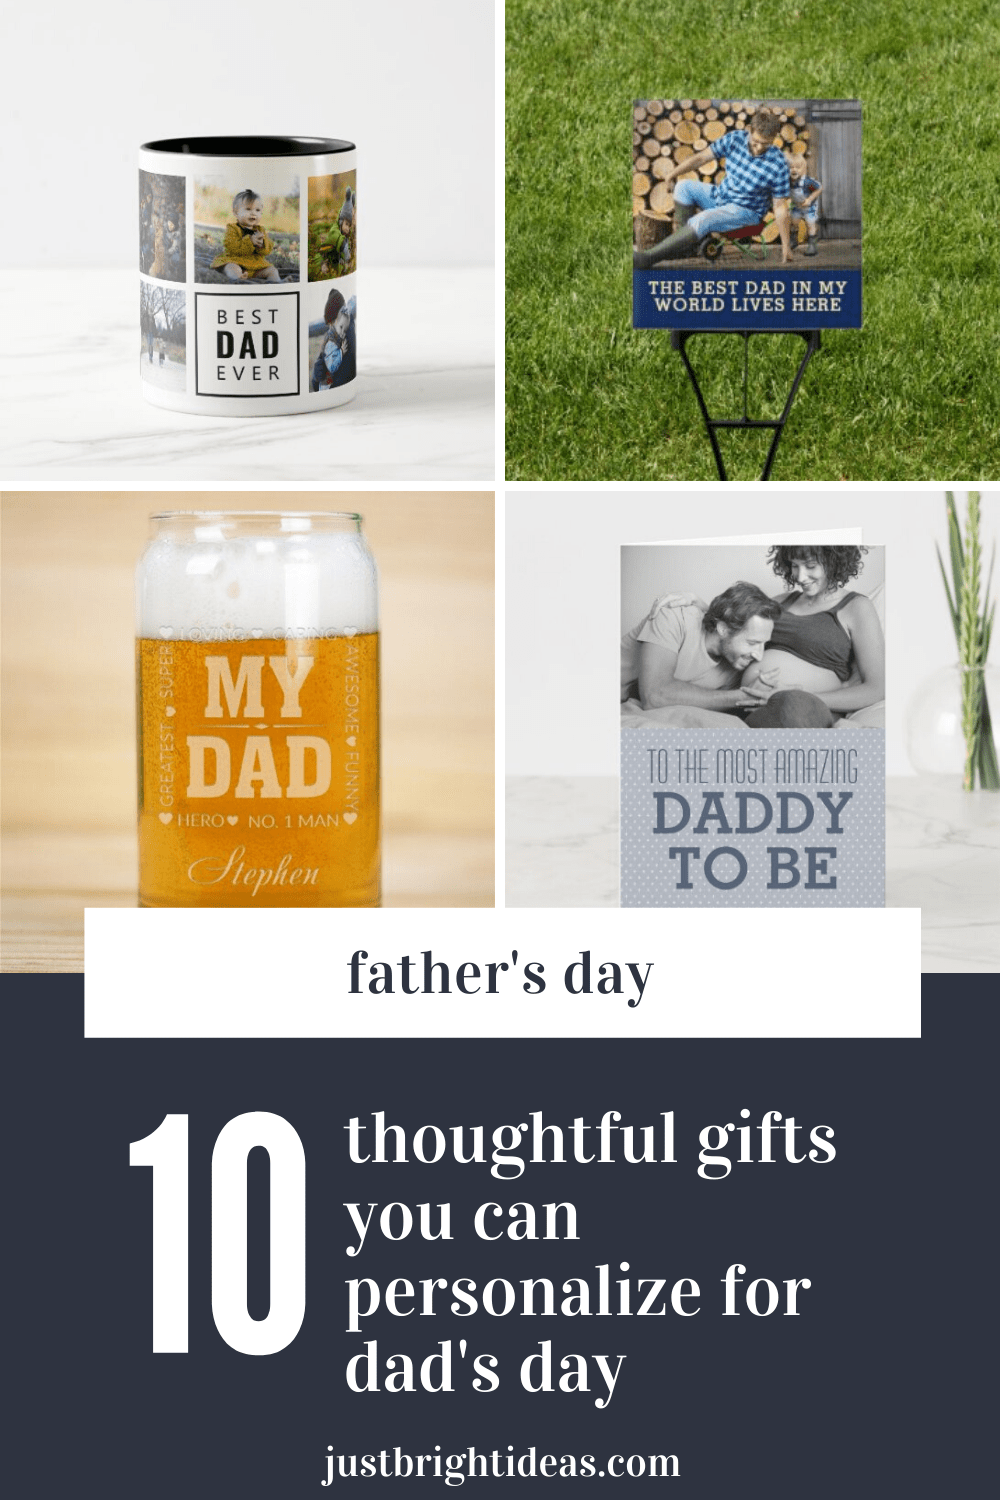 These unique Father's Day gifts can be personalized with photos or names to make them extra special for dad